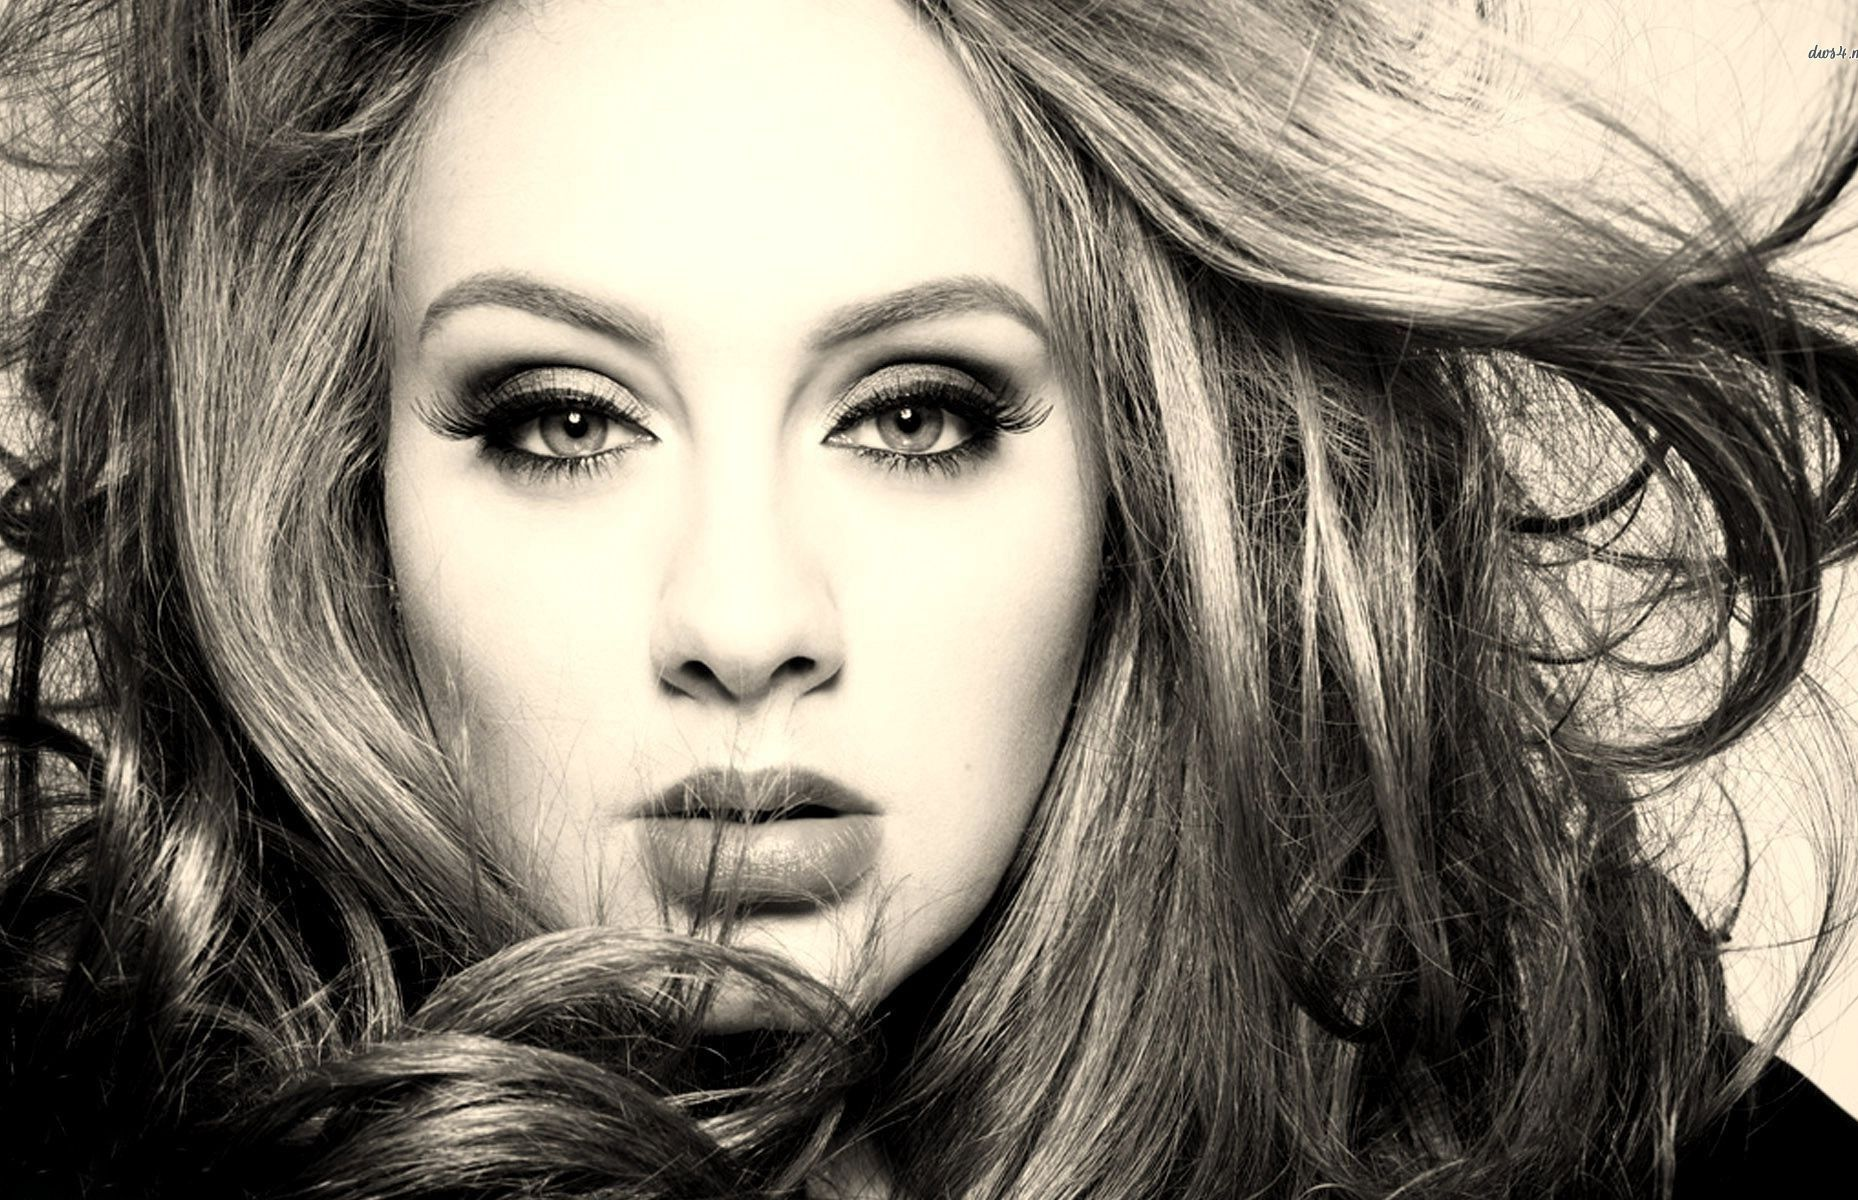 Adele Beautiful Hd Wallpapers Adele Wallpaper Celebrity Wallpapers Adele Images